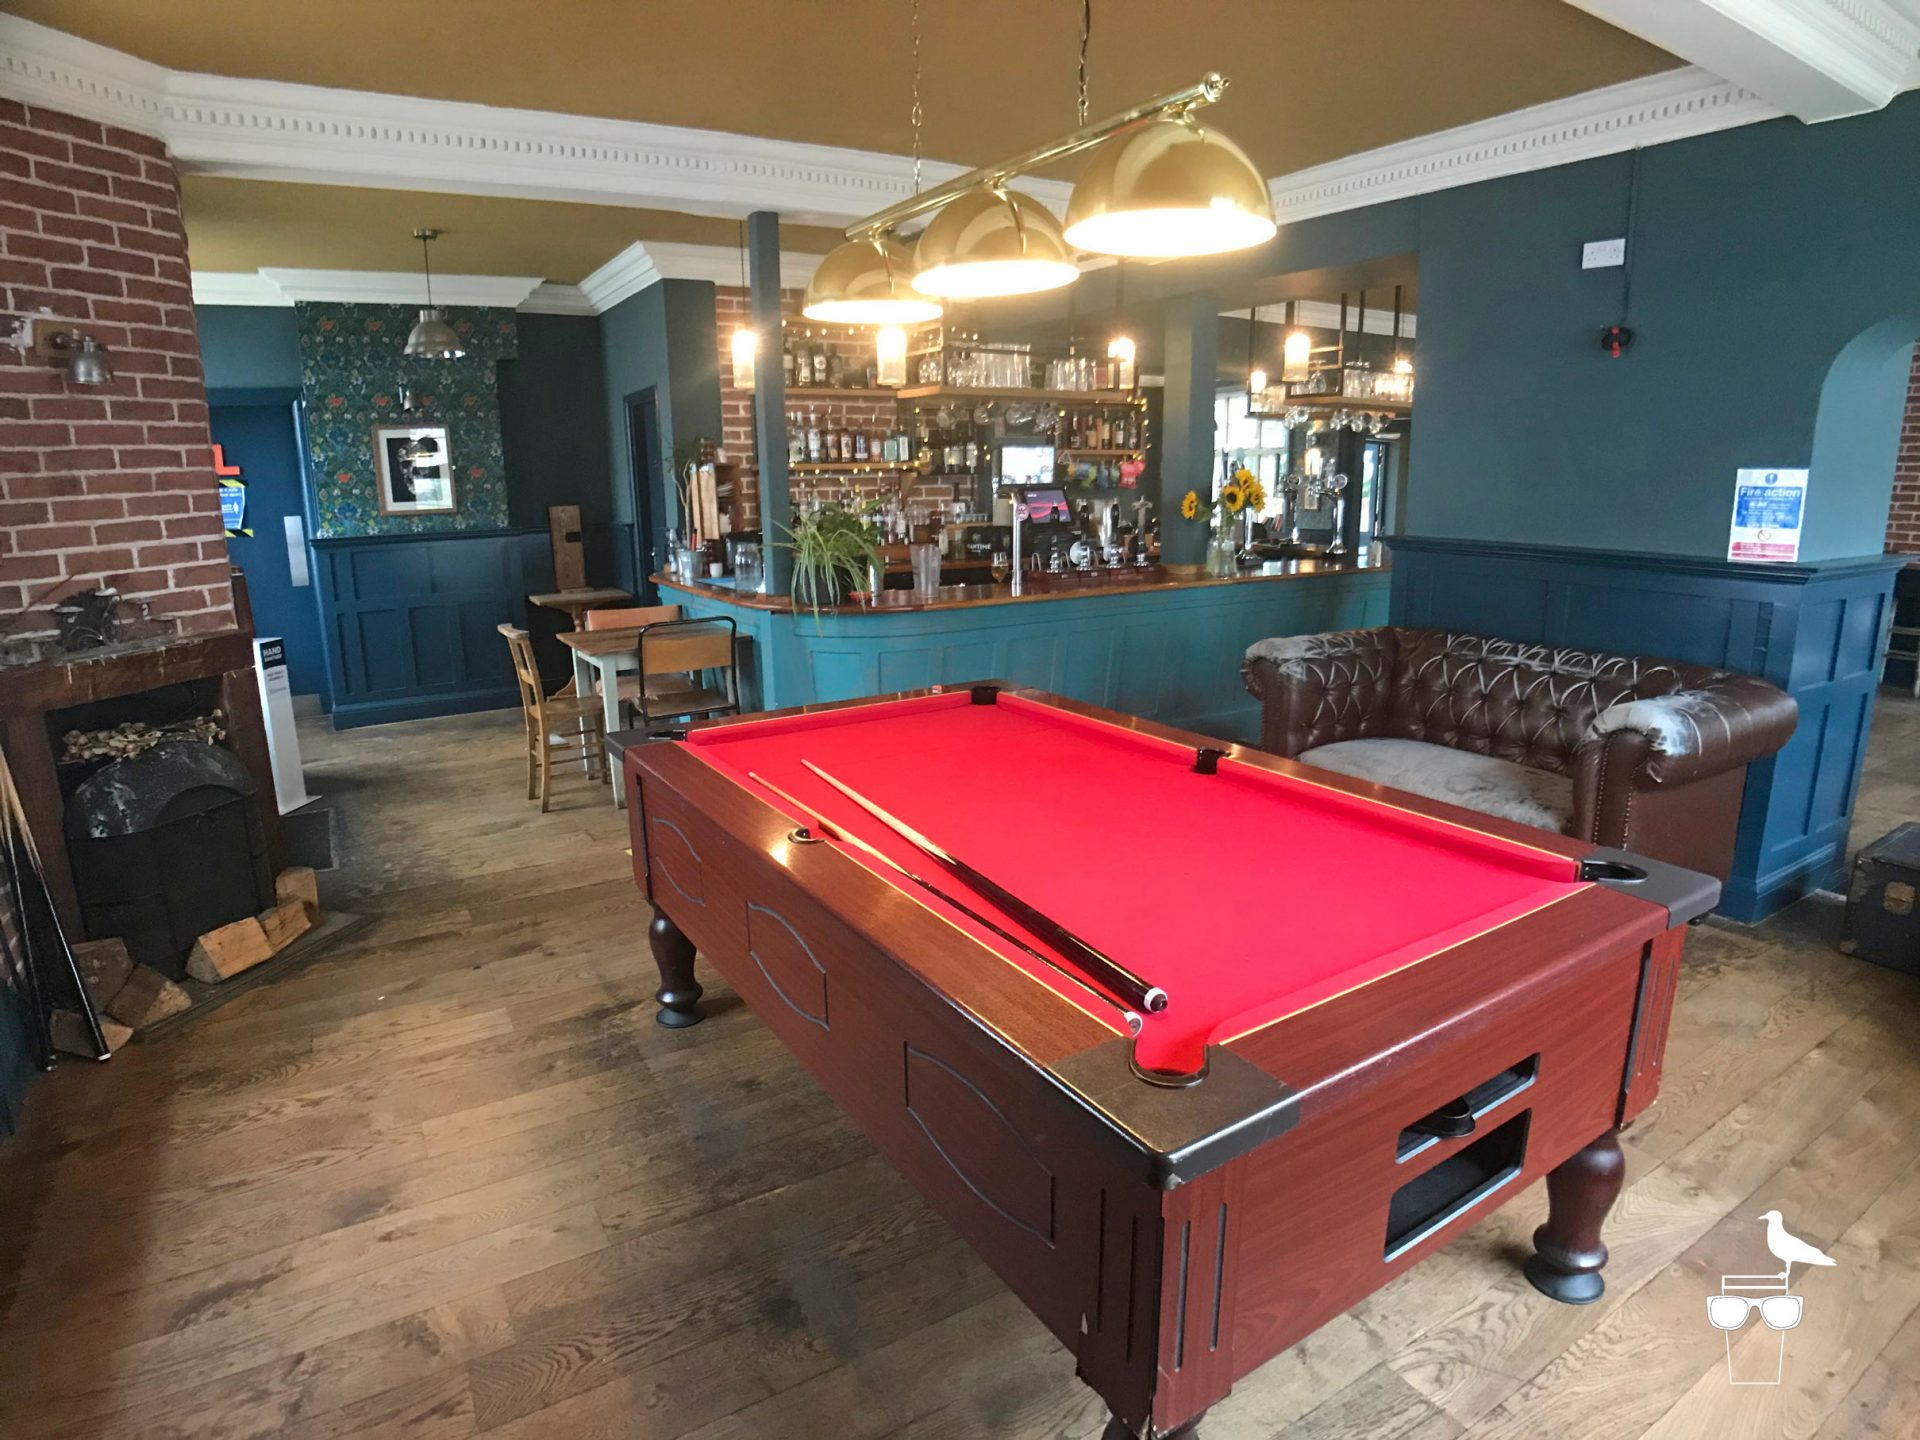 martha-gunn-pub-brighton-inside-pool-table